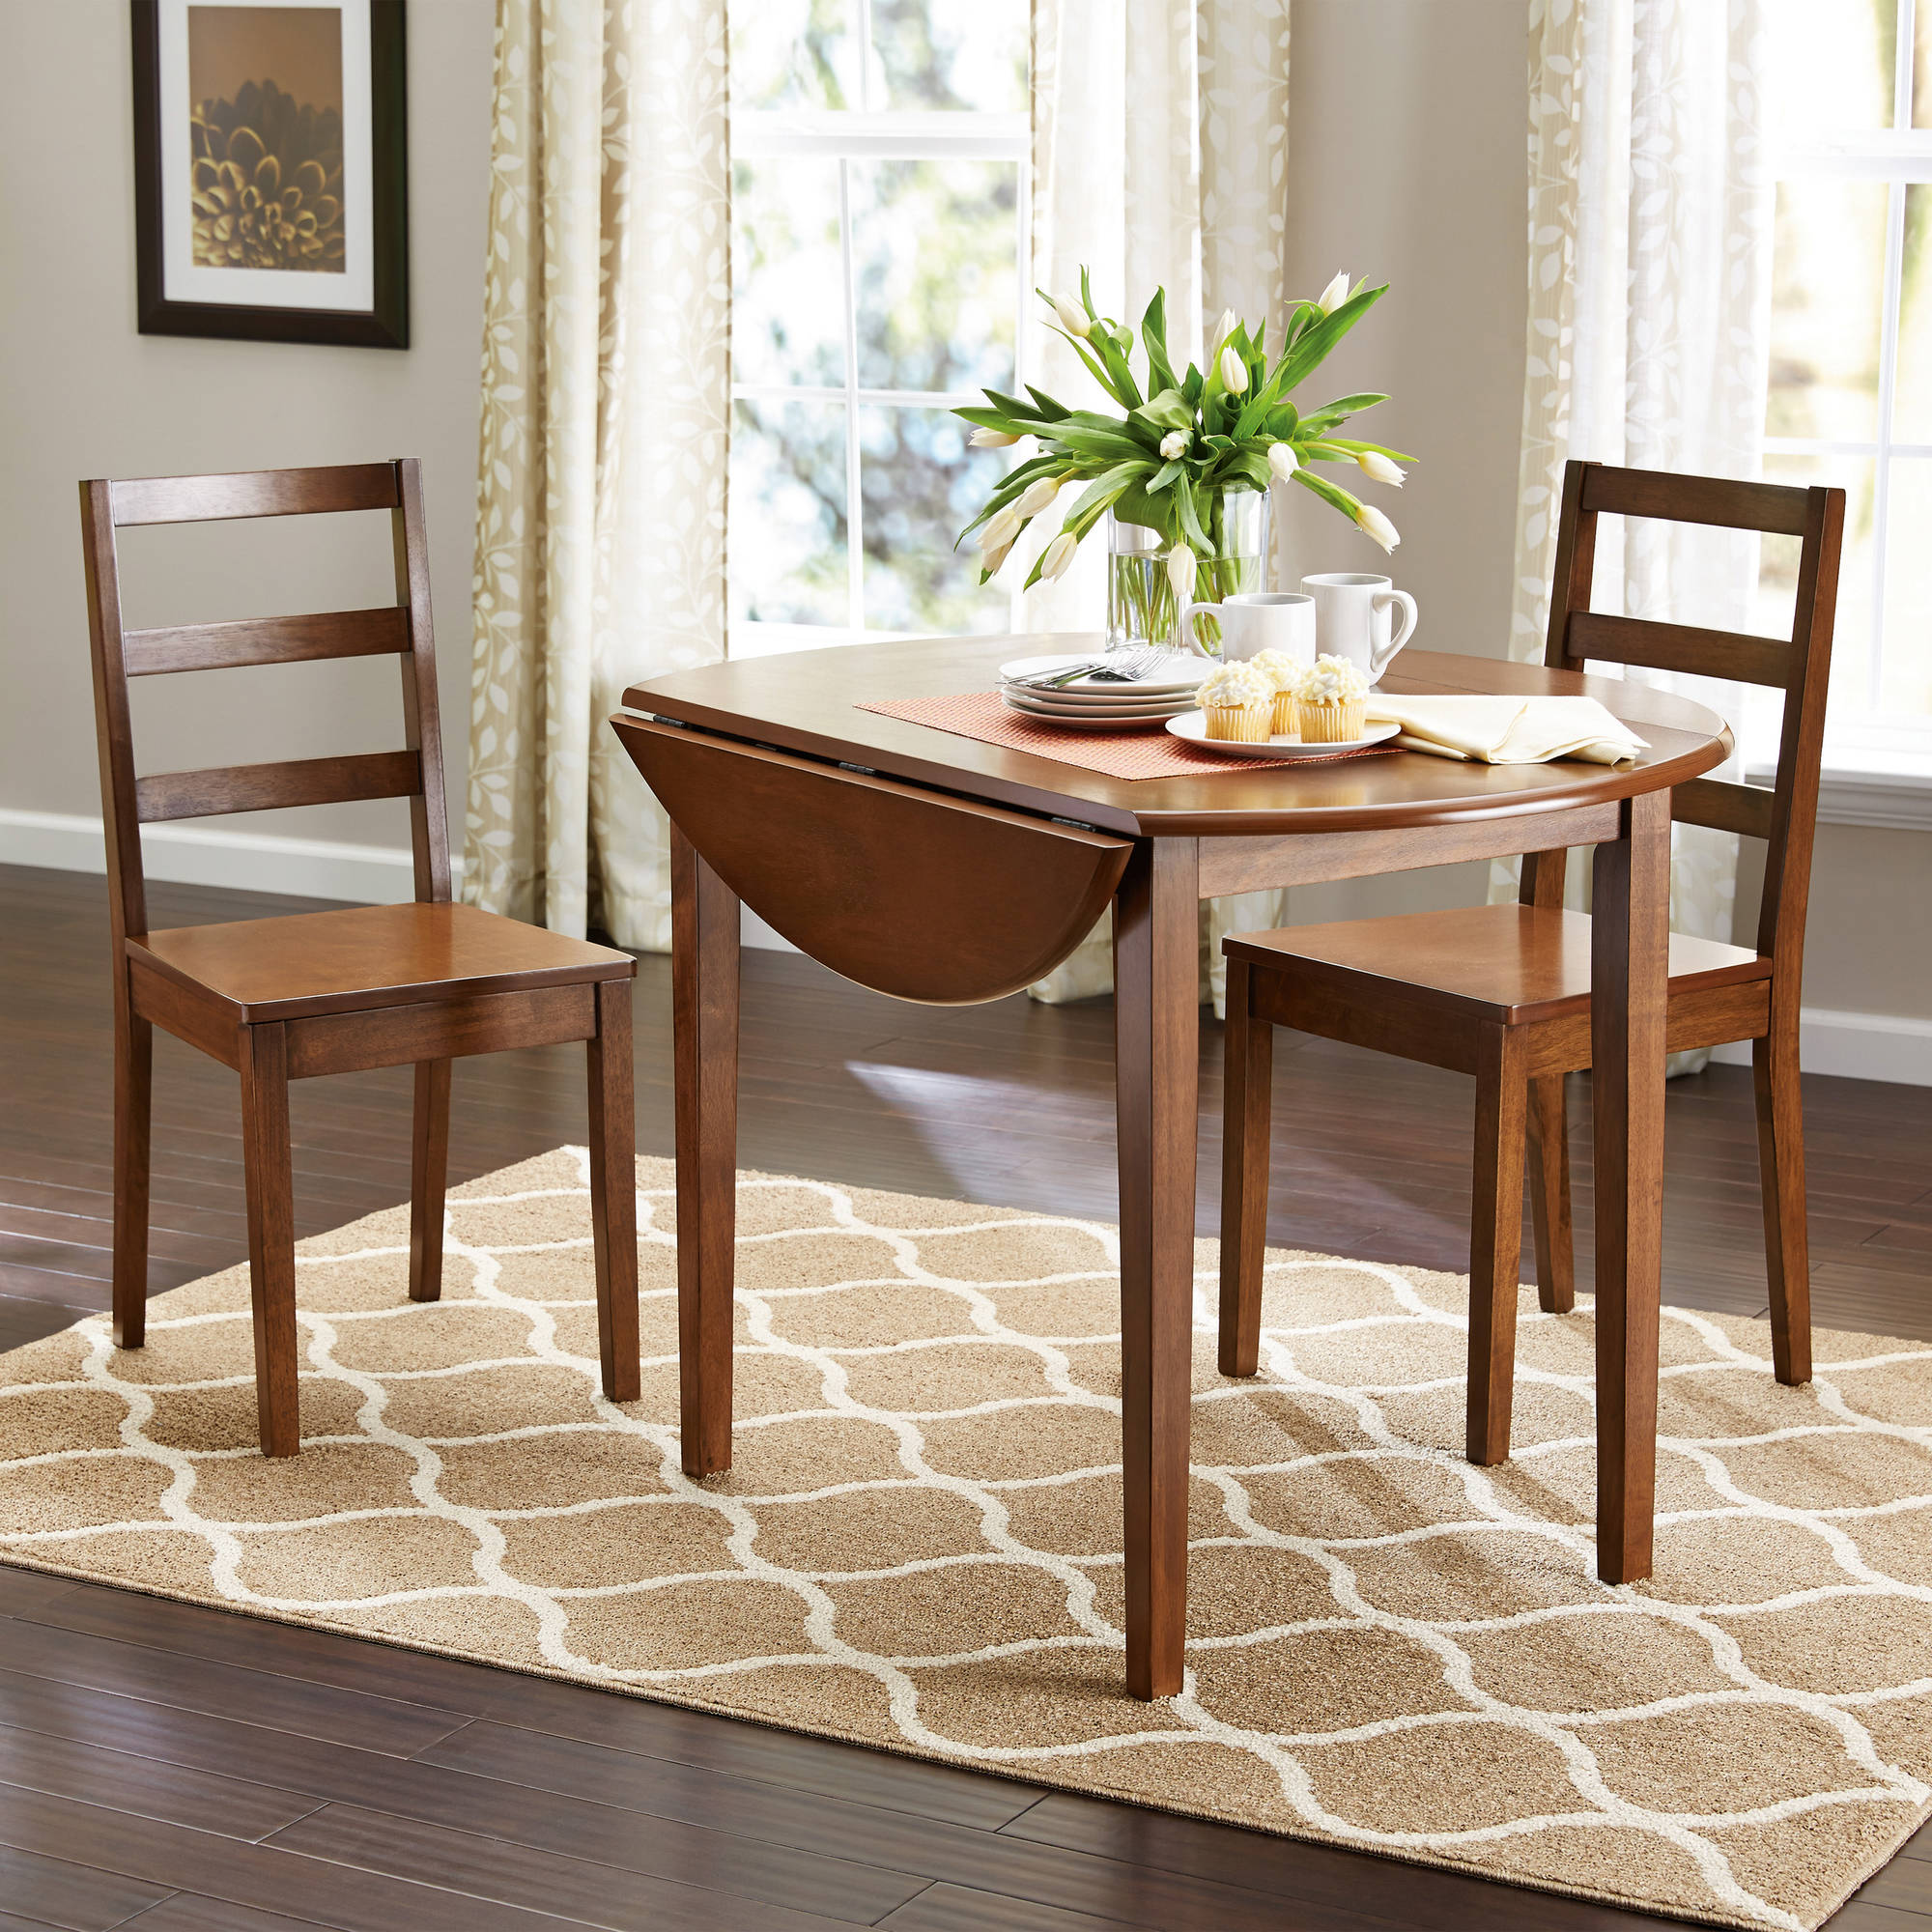 mainstays 3 piece drop leaf dining set medium oak finish walmartcom - Walmart Kitchen Tables